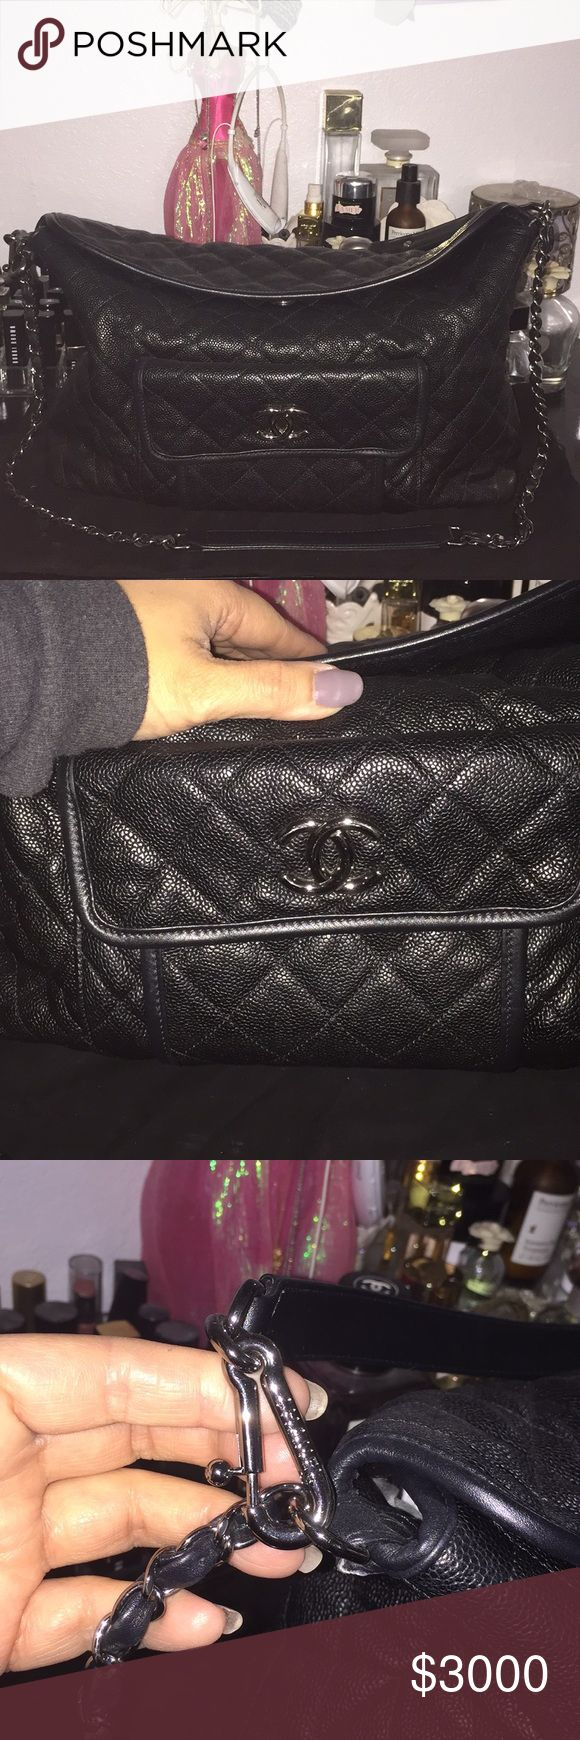 "💯% authentic Chanel bag with wallet It is in very good condition. Corners are lightly scuffy. Not noticeable unless you are looking for it. Comes with short and long straps. I will also include the original receipt. Complete set with matching wallet. No low ballers please. Measurements h 6"" w 13.5"", d 4.5 CHANEL Bags Shoulder Bags"